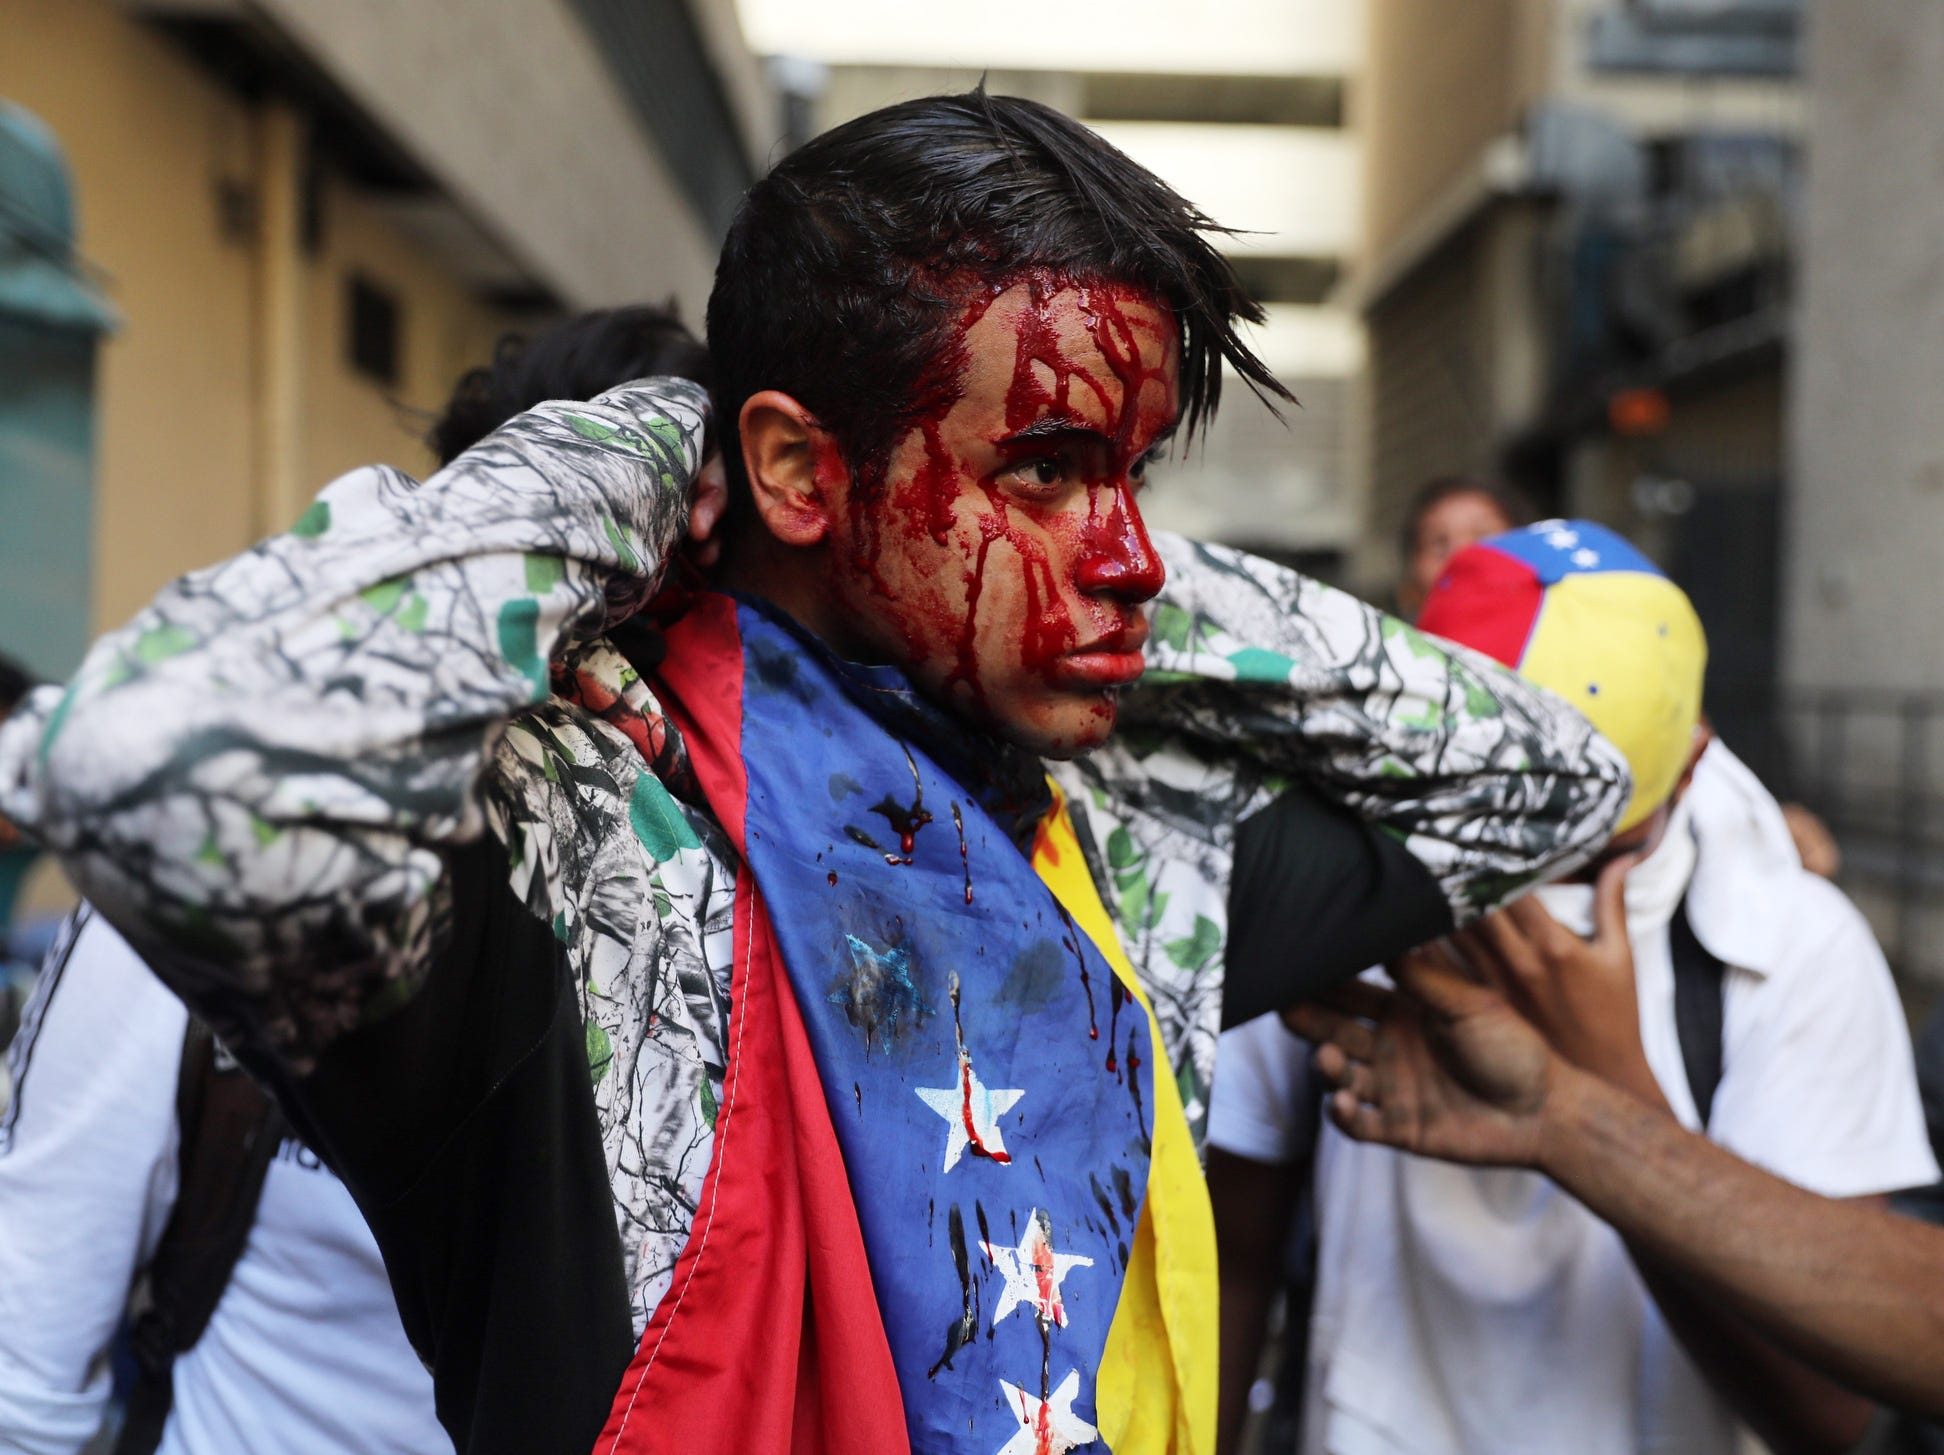 A wounded protester is aided as thousands take to the streets during a protest against President Maduro in Caracas, Venezuela, on Wednesday. Many Heads of State and governments have recognized Guaido as president, among them US President Donald Trump, Canadian Government and Brazil President Jair Bolsonaro. Venezuela has been facing an economic and social crisis where the inflation, according to the document of the National Assembly, has reached 80.000 per cent per cent in 12 months and the shortages of basic items have lead millions of people into poverty while according to reports up to three million Venezuelans have left the country since 2014.